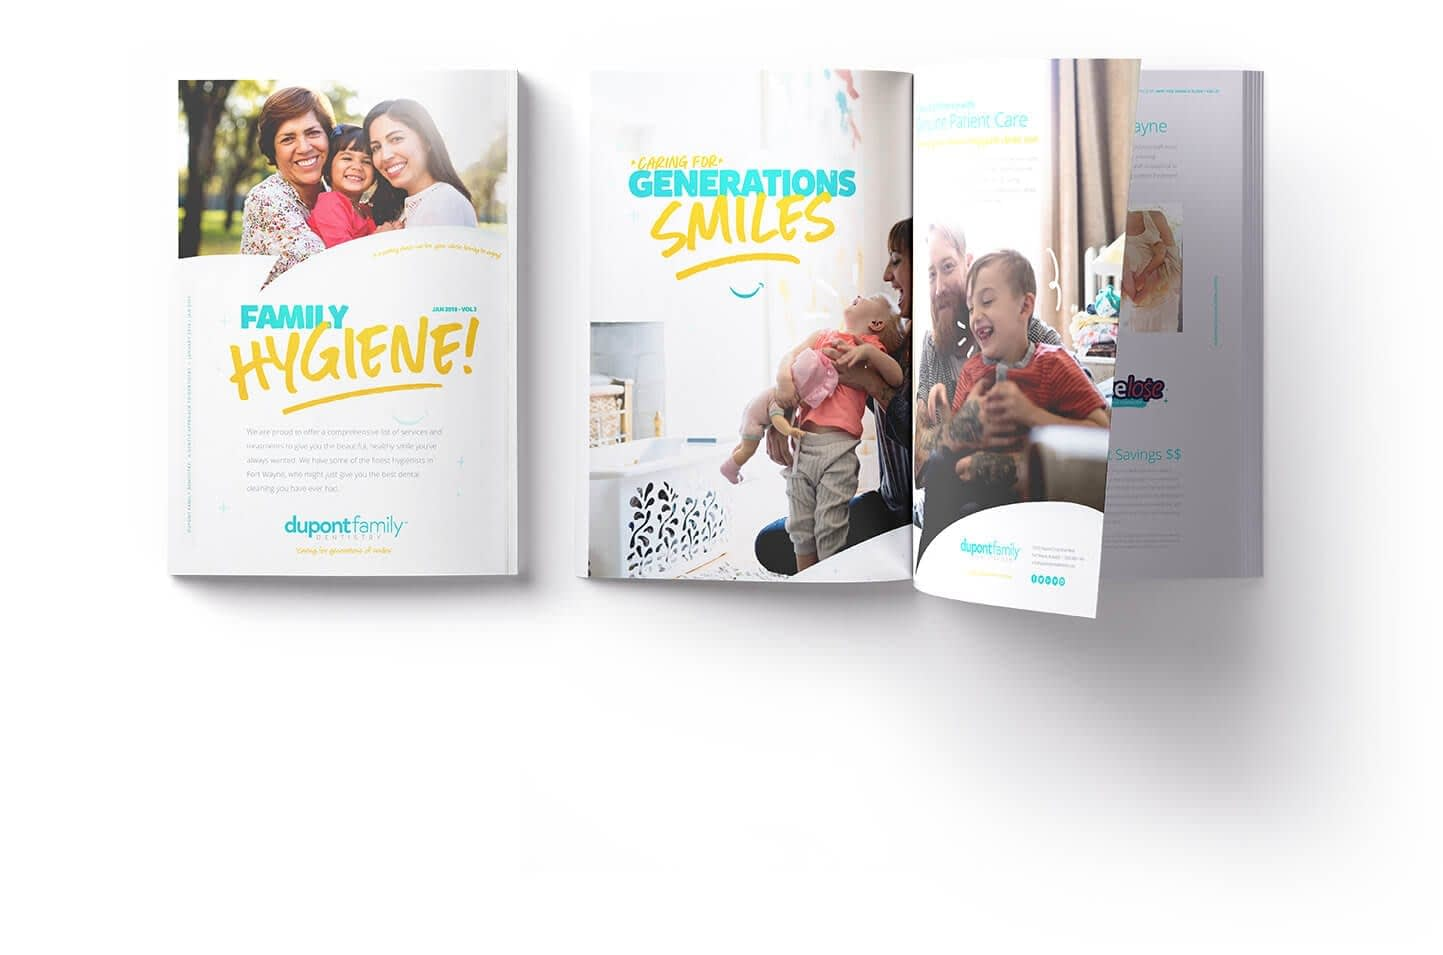 Dupont-Family-Dentistry_Logo_Cosmetic-General_Dentist_Fort-Wayne-Indiana_Dr-Diehl_Magazine Mockup_Family-Hygiene_Caring-for-Generations-of-Smiles